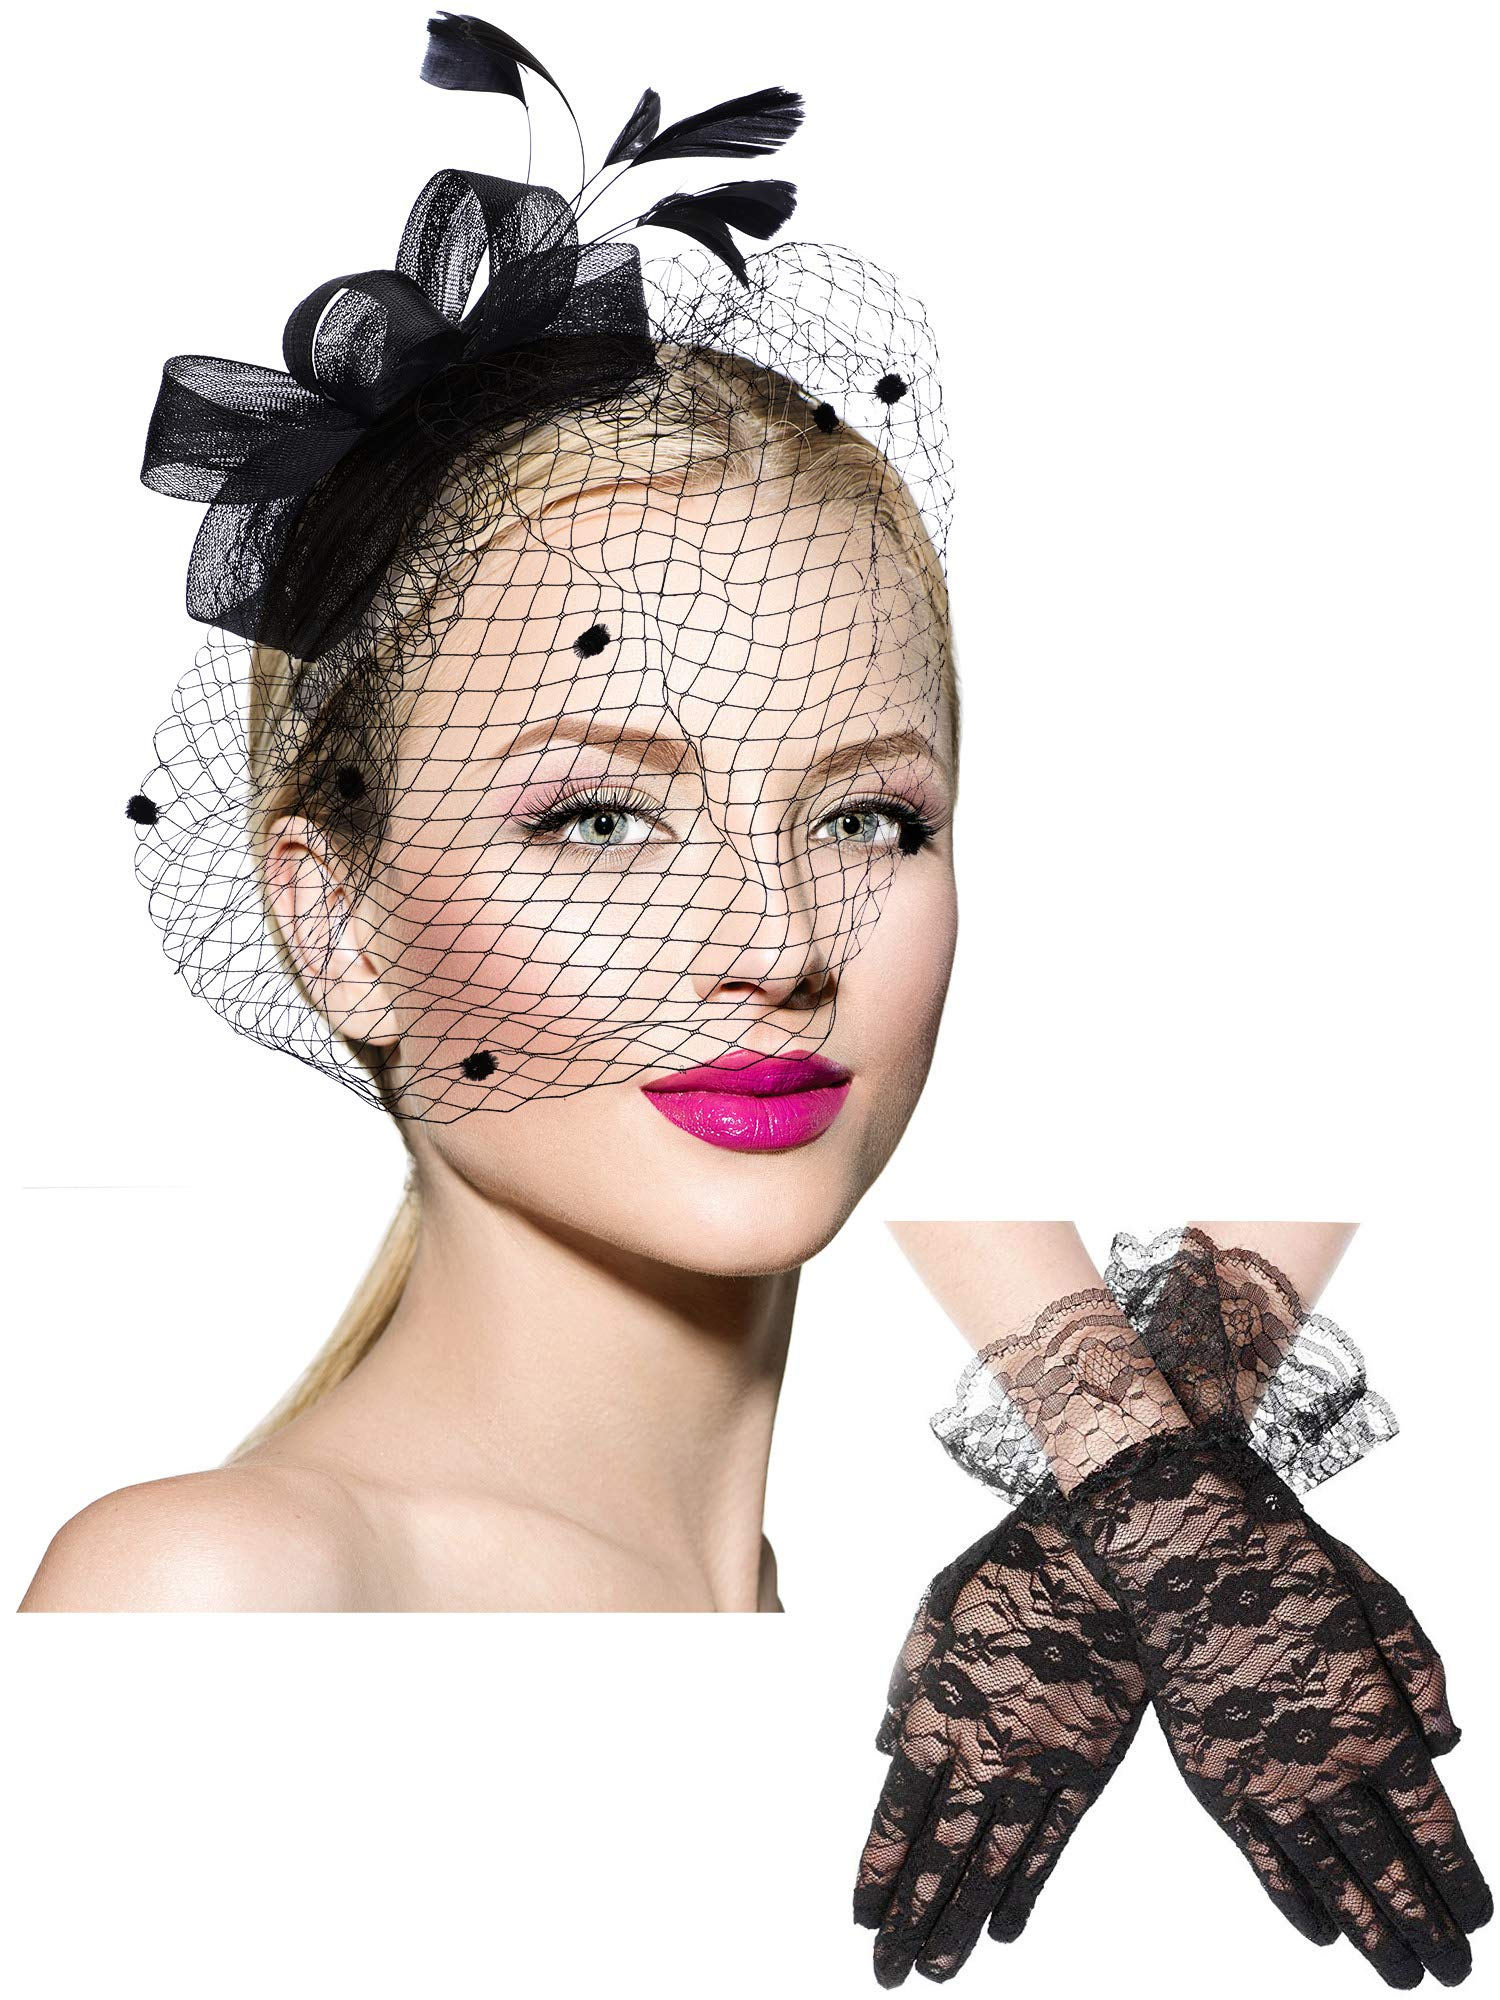 Bowknot Fascinator Hat Feathers Veil Mesh Headband and Short Lace Gloves Floral Lace Gloves Black by Boao